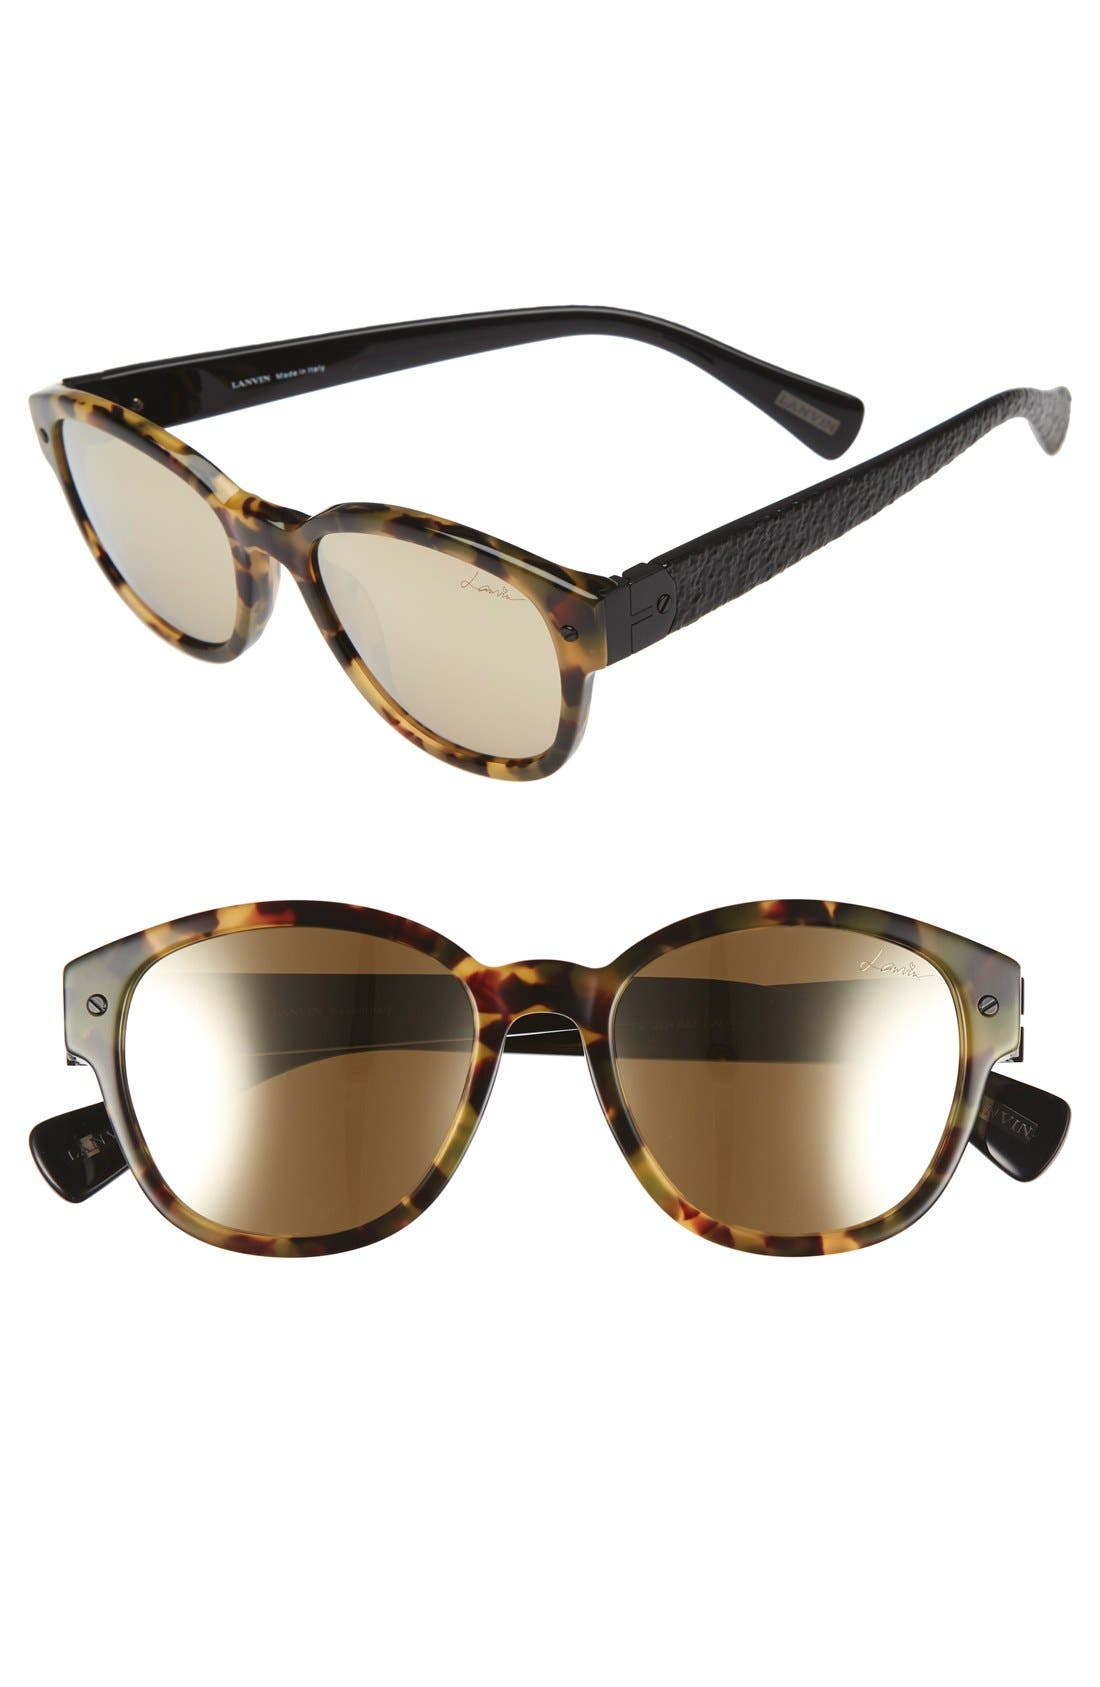 50mm Retro Sunglasses,                             Main thumbnail 1, color,                             Light Havana